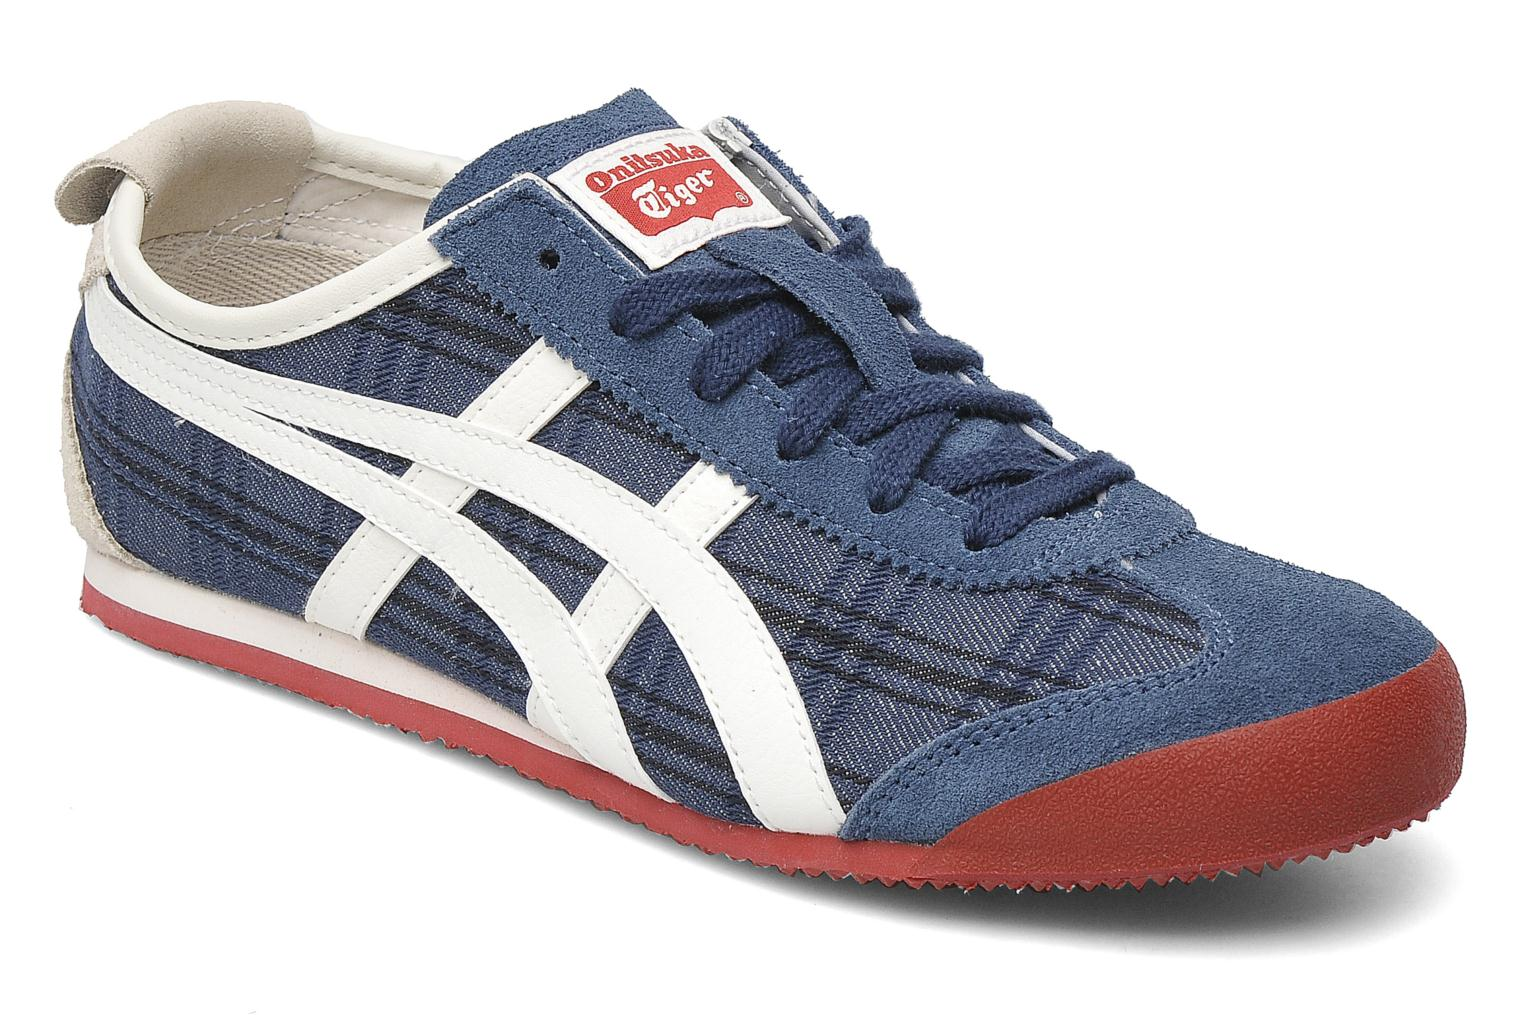 onitsuka tiger mexico 66 shop for cheap men 39 s footwear and save online. Black Bedroom Furniture Sets. Home Design Ideas